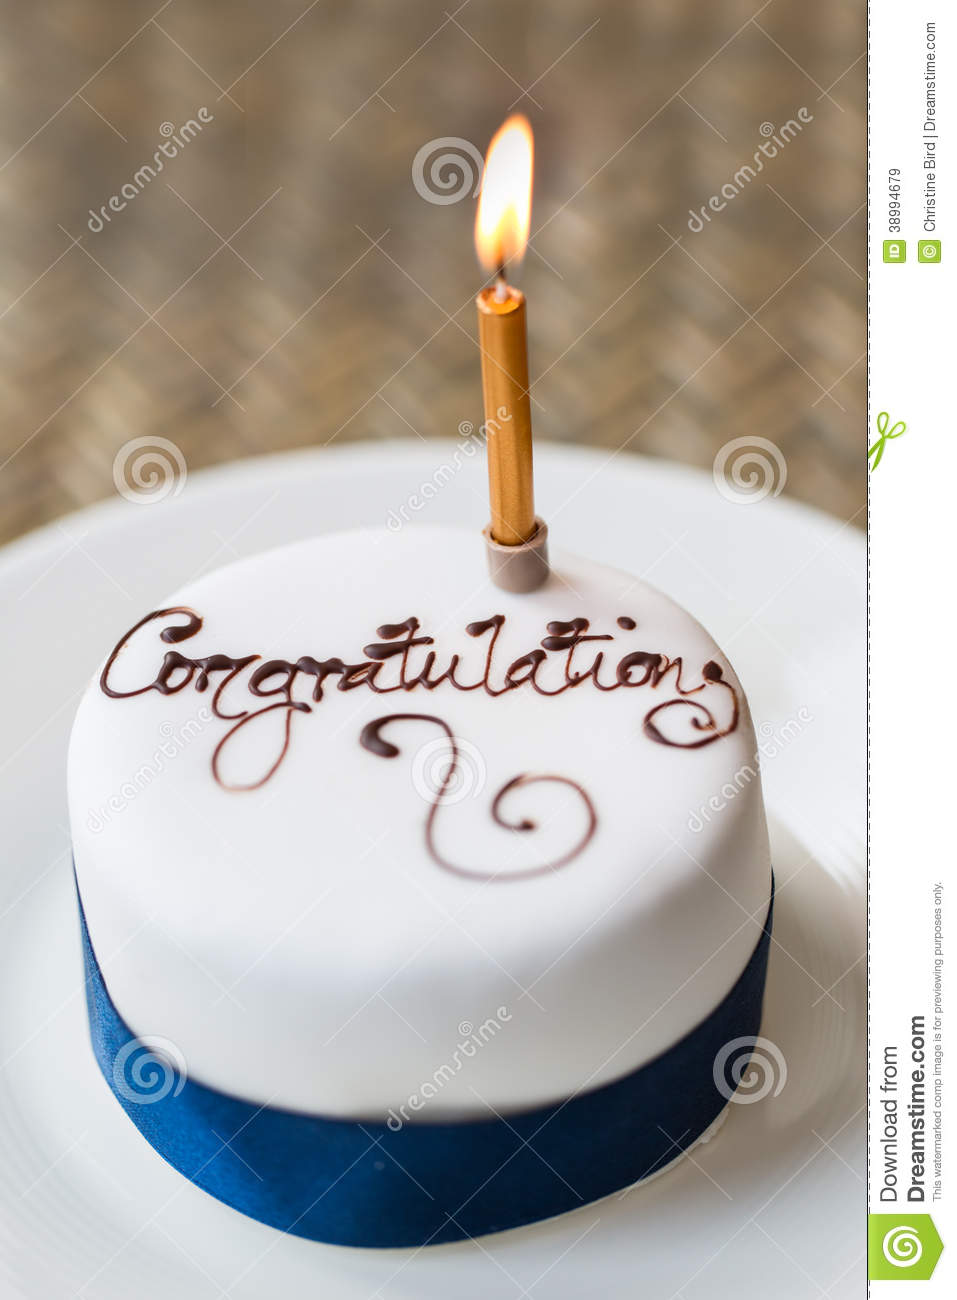 Congratulations Cake Stock Photo Image 38994679